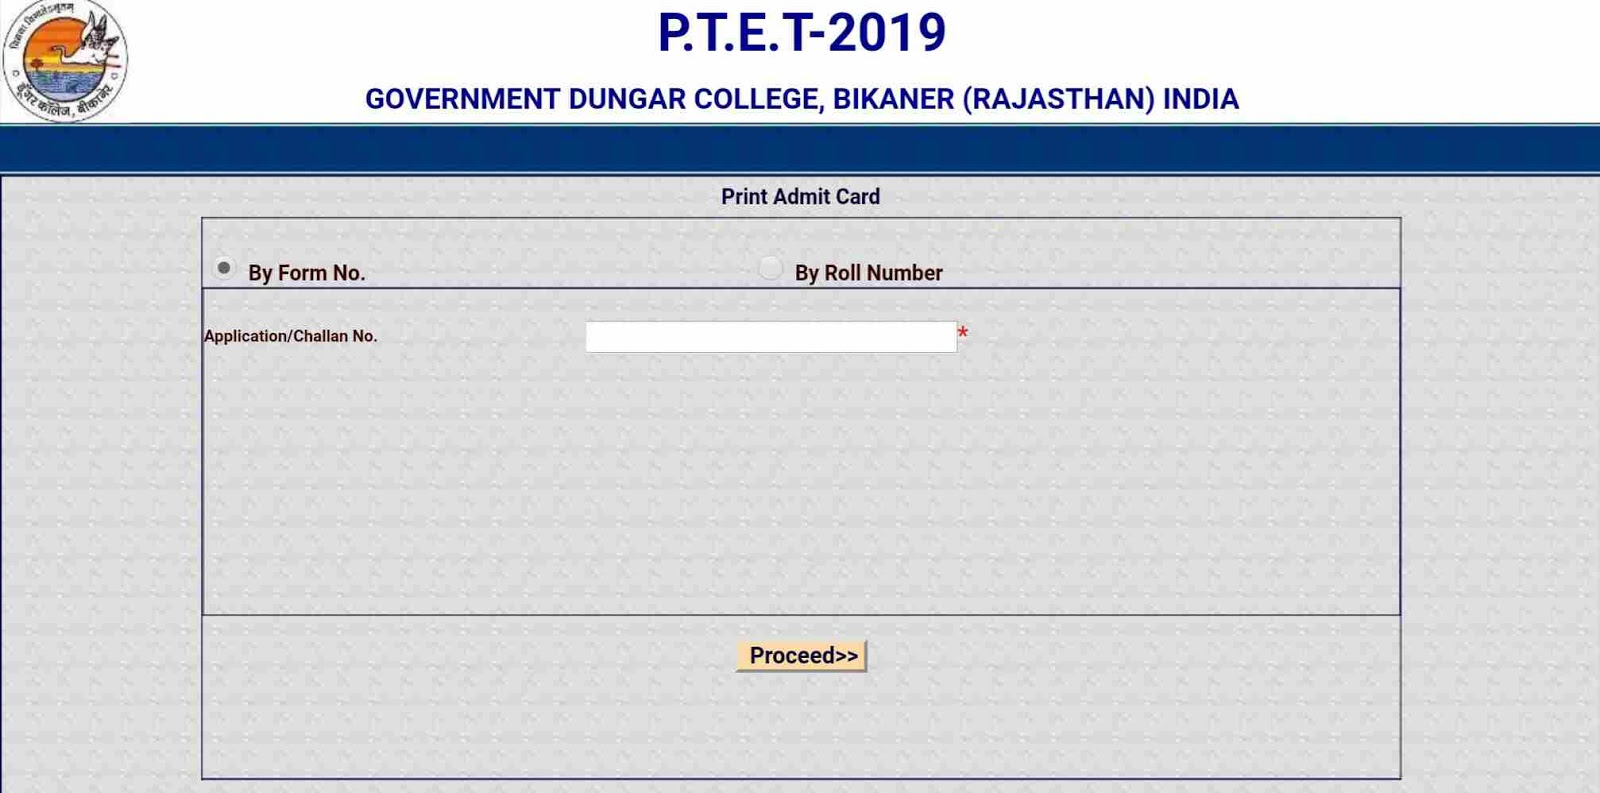 Rajasthan PTET 2019 Admit Card Download